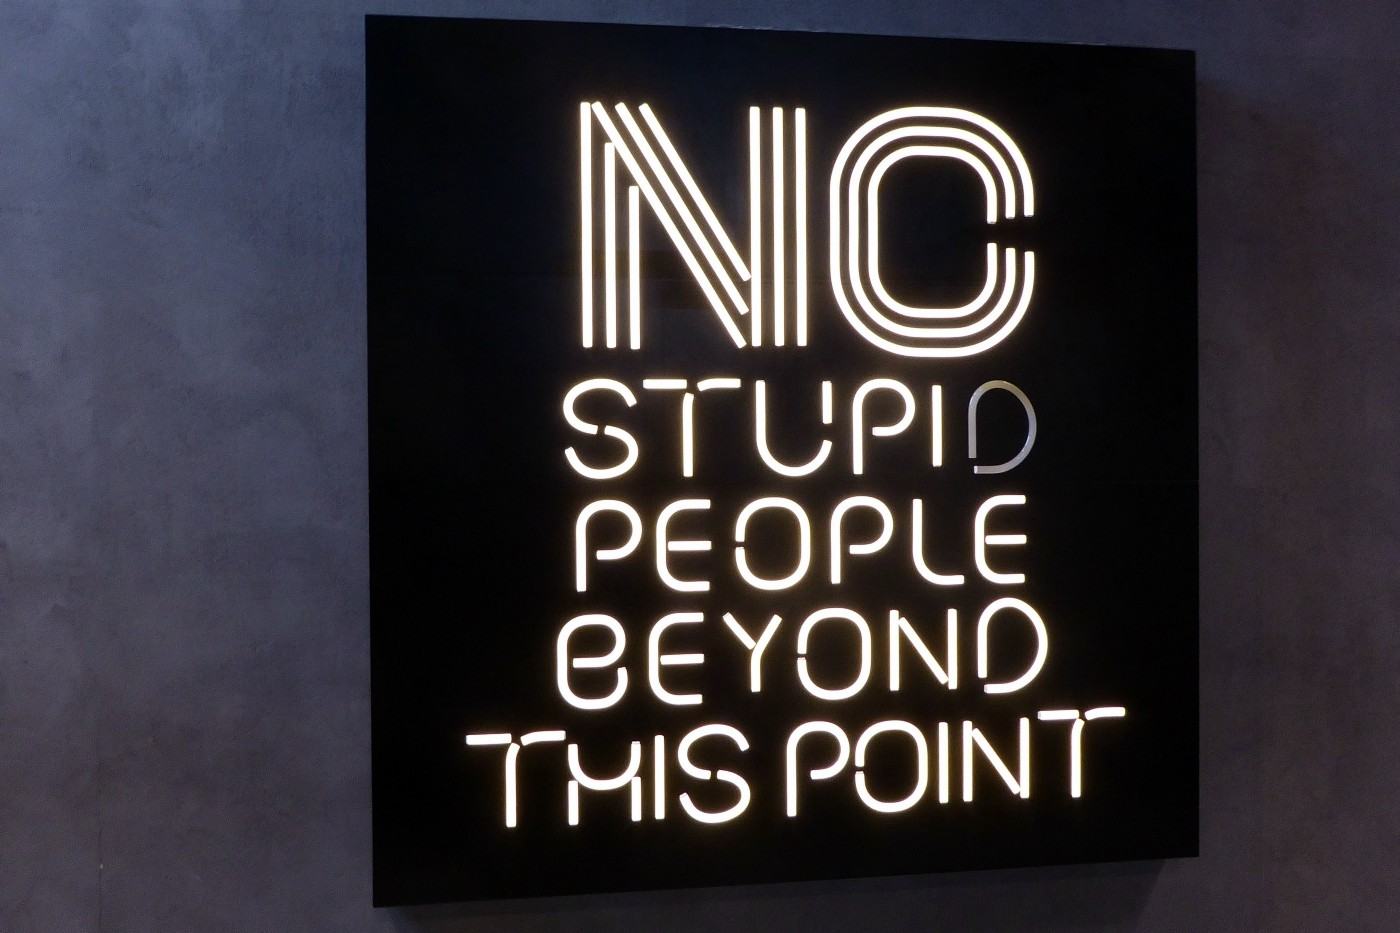 Black sign with neon writing on it